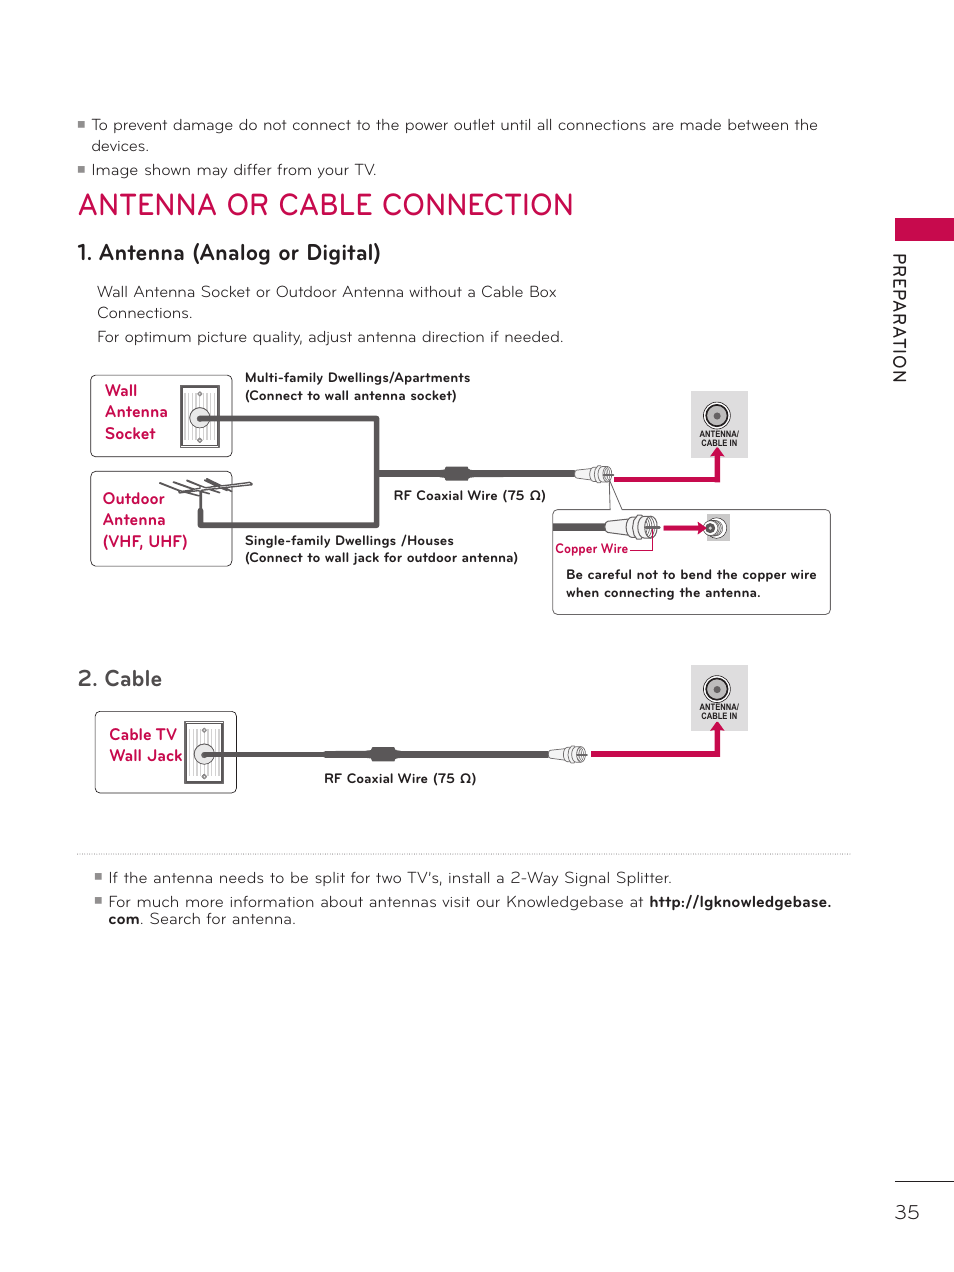 medium resolution of antenna or cable connection antenna analog or digital cable lg 42ld520 user manual page 35 172